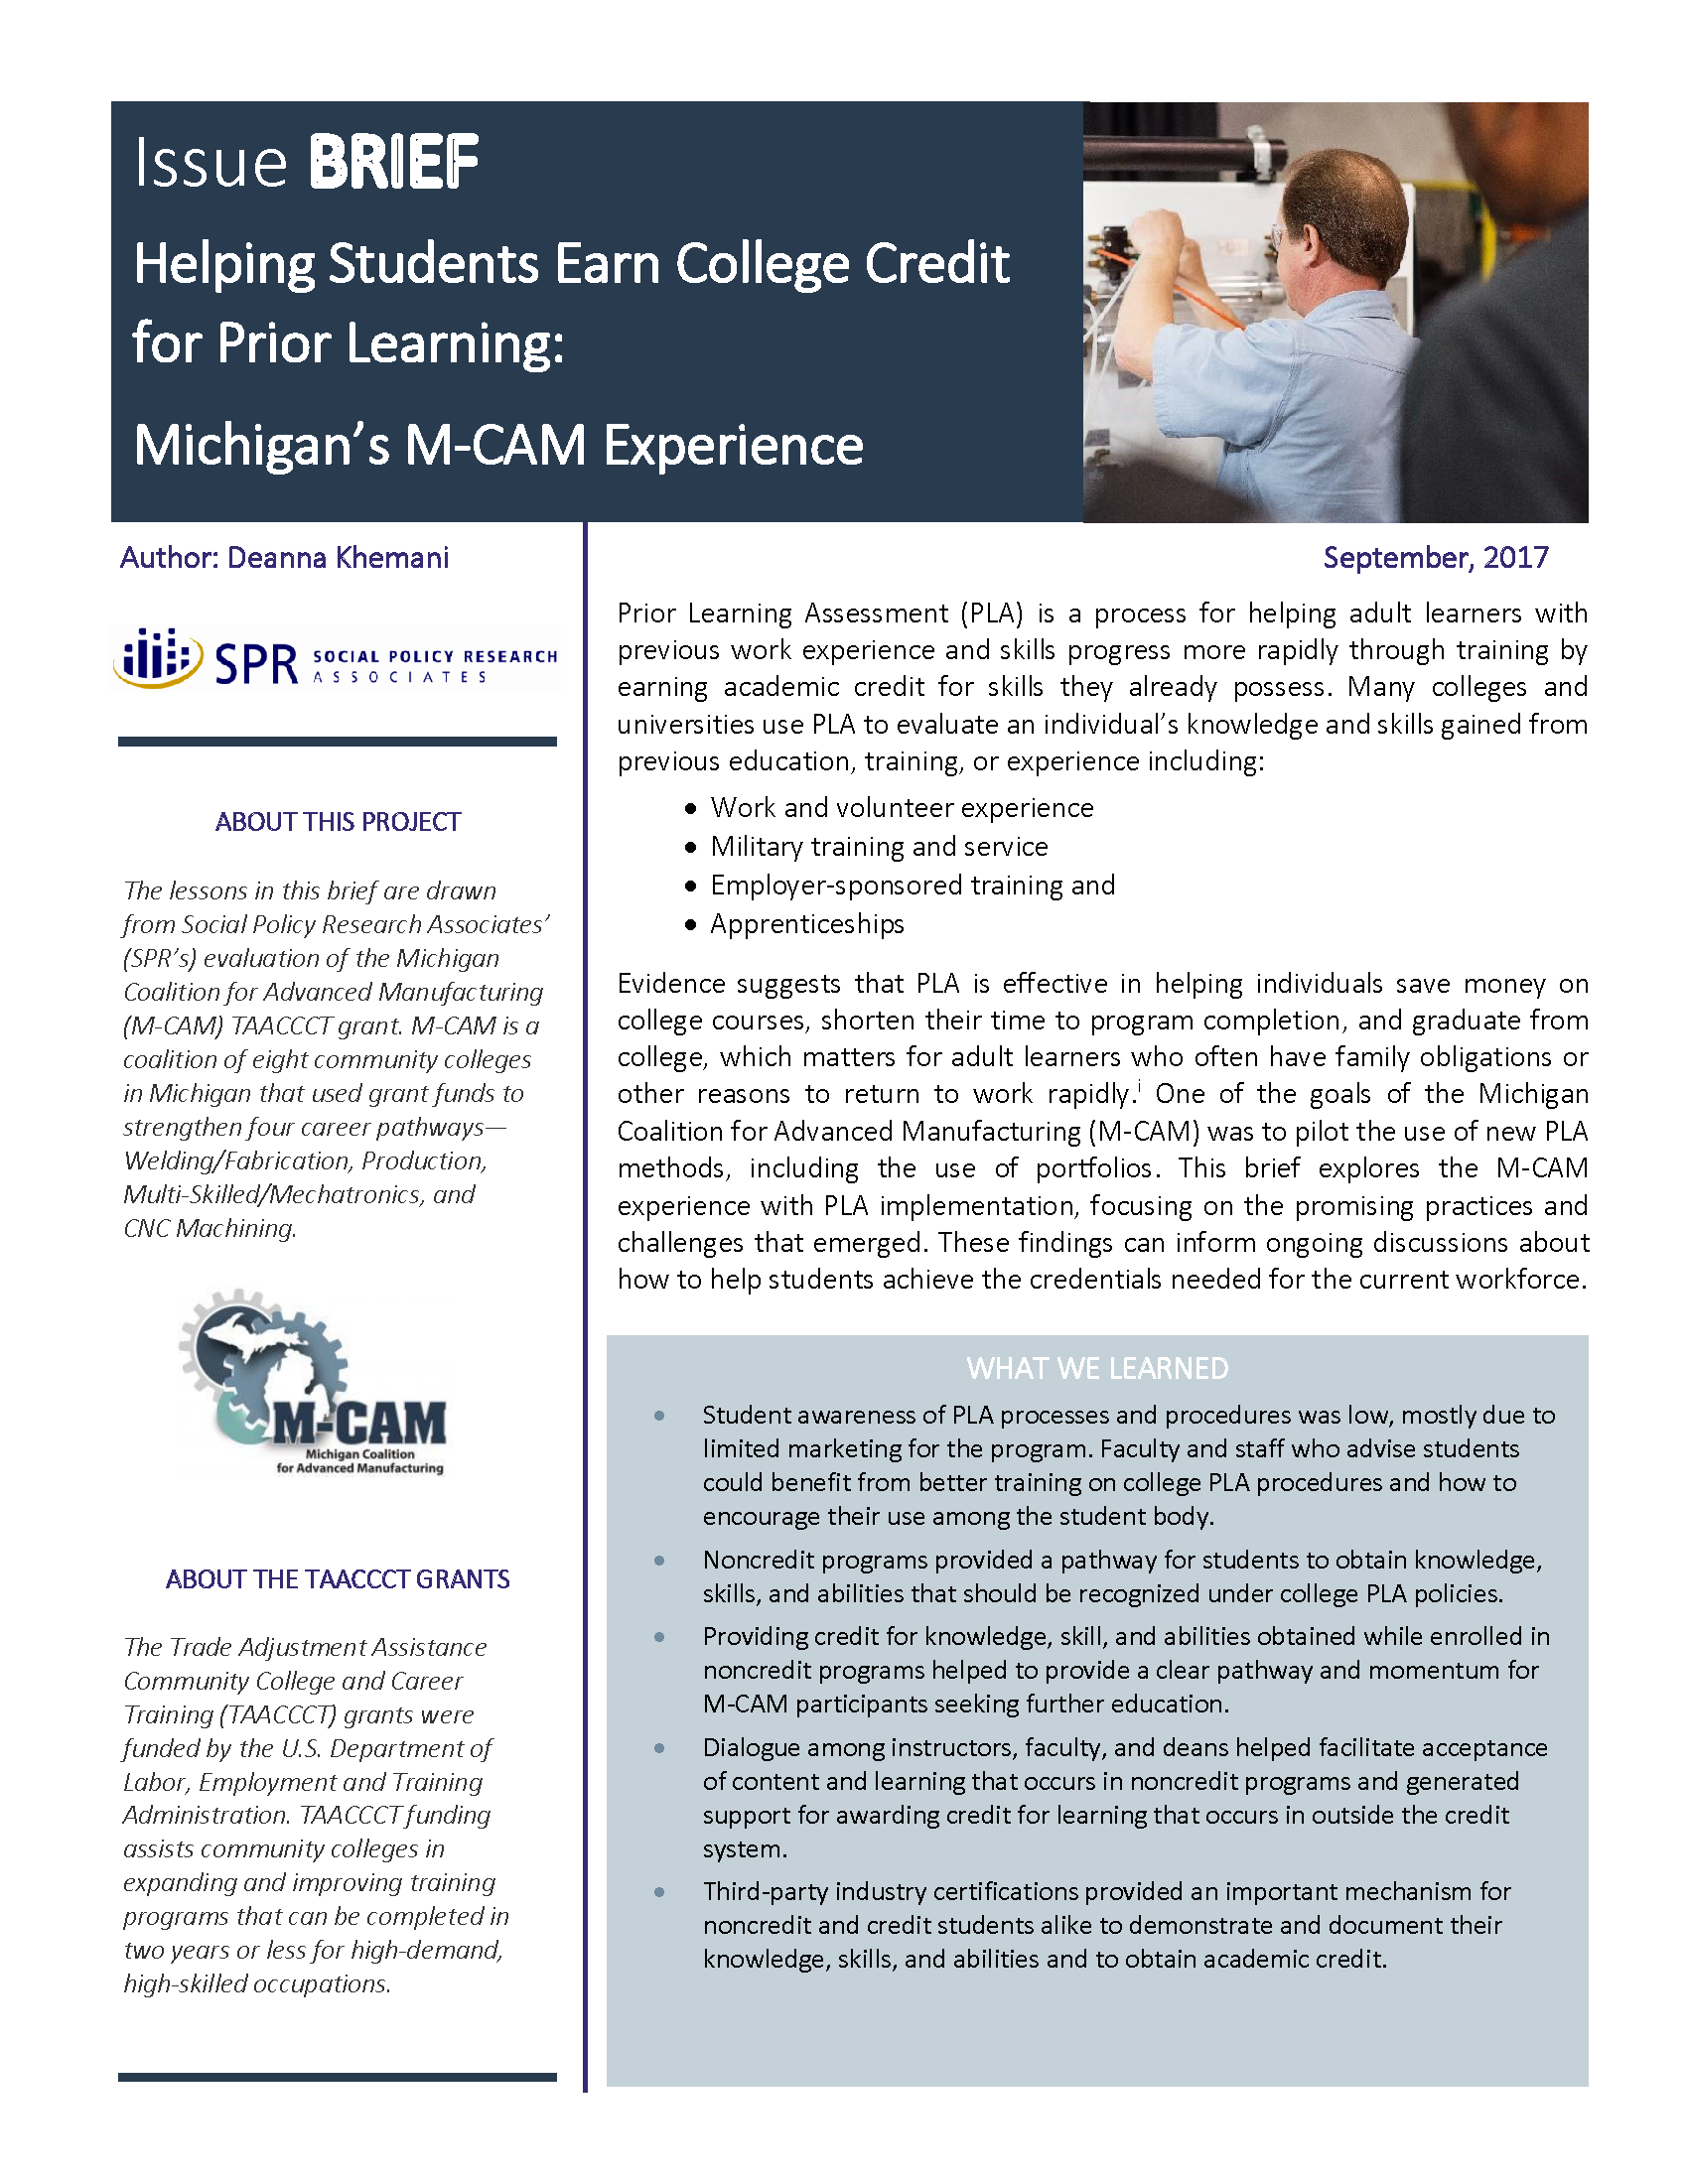 Cover of Helping Students Earn College Credit for Prior Learning: Michigan's M-CAM Experience Brief